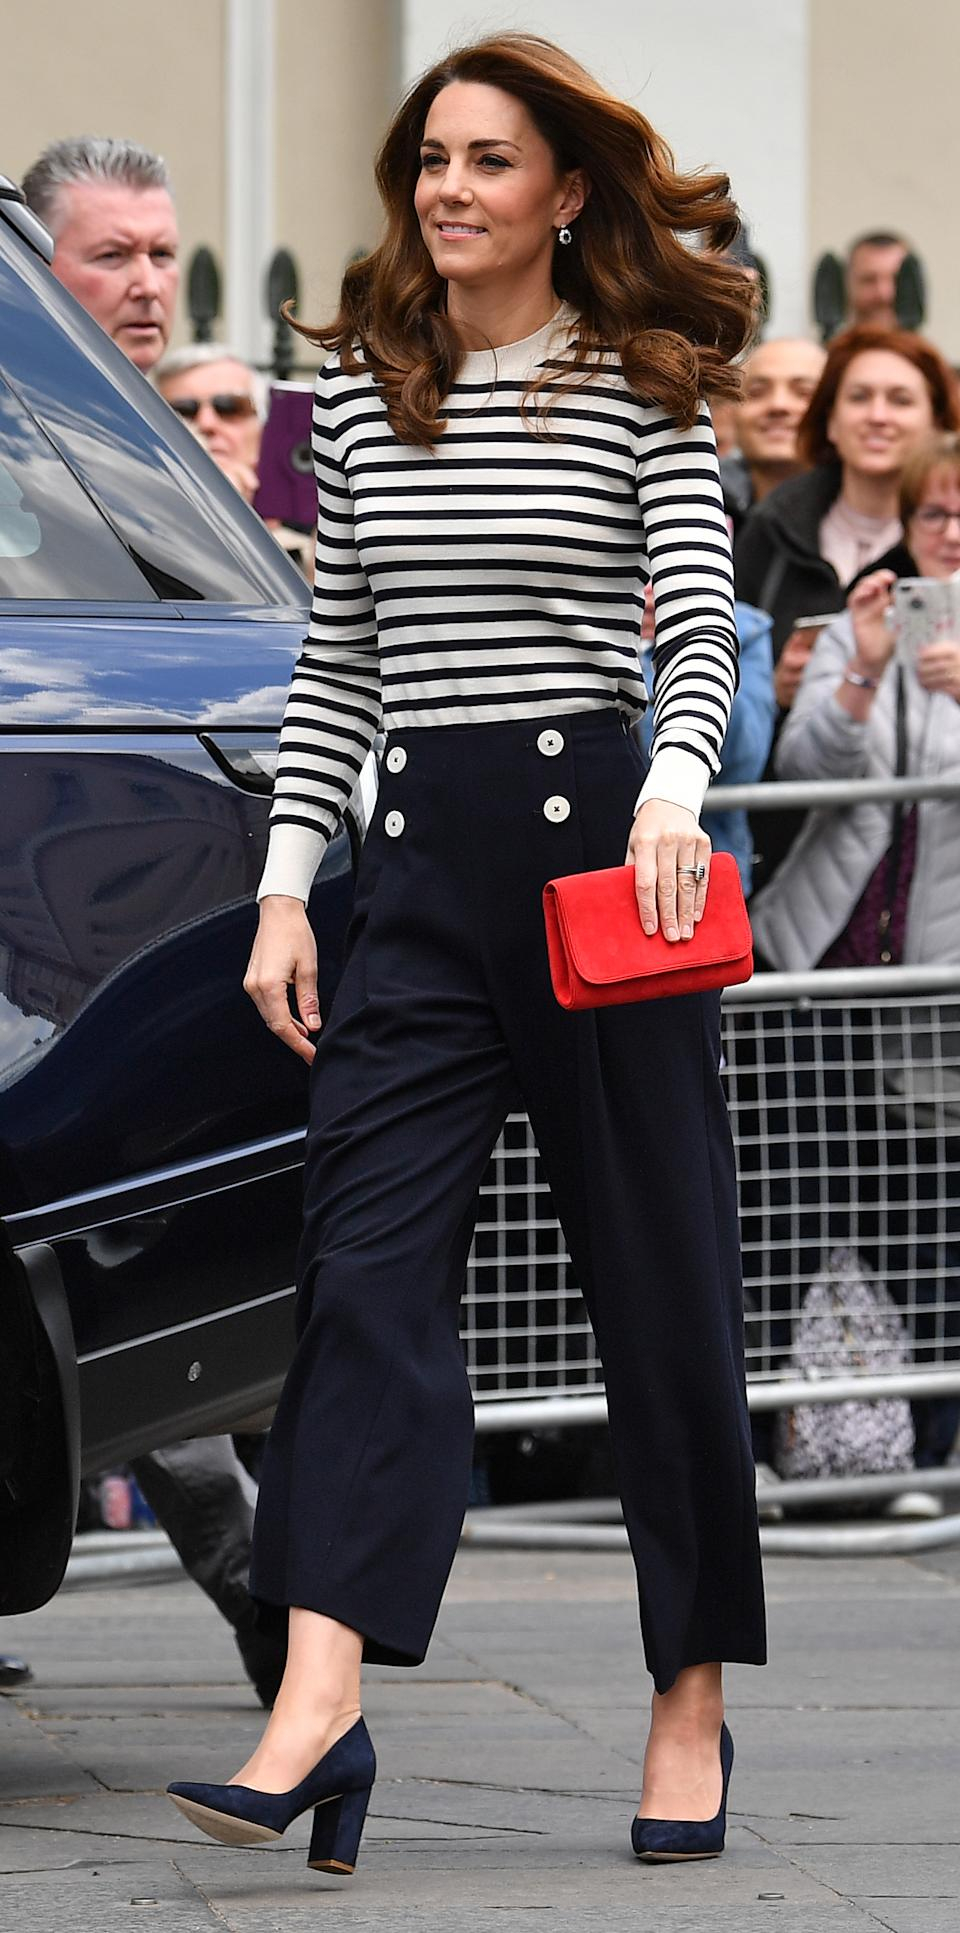 The Duchess of Cambridge arrives to launch the King's Cup Regatta on May 7, 2019. (Getty Images)